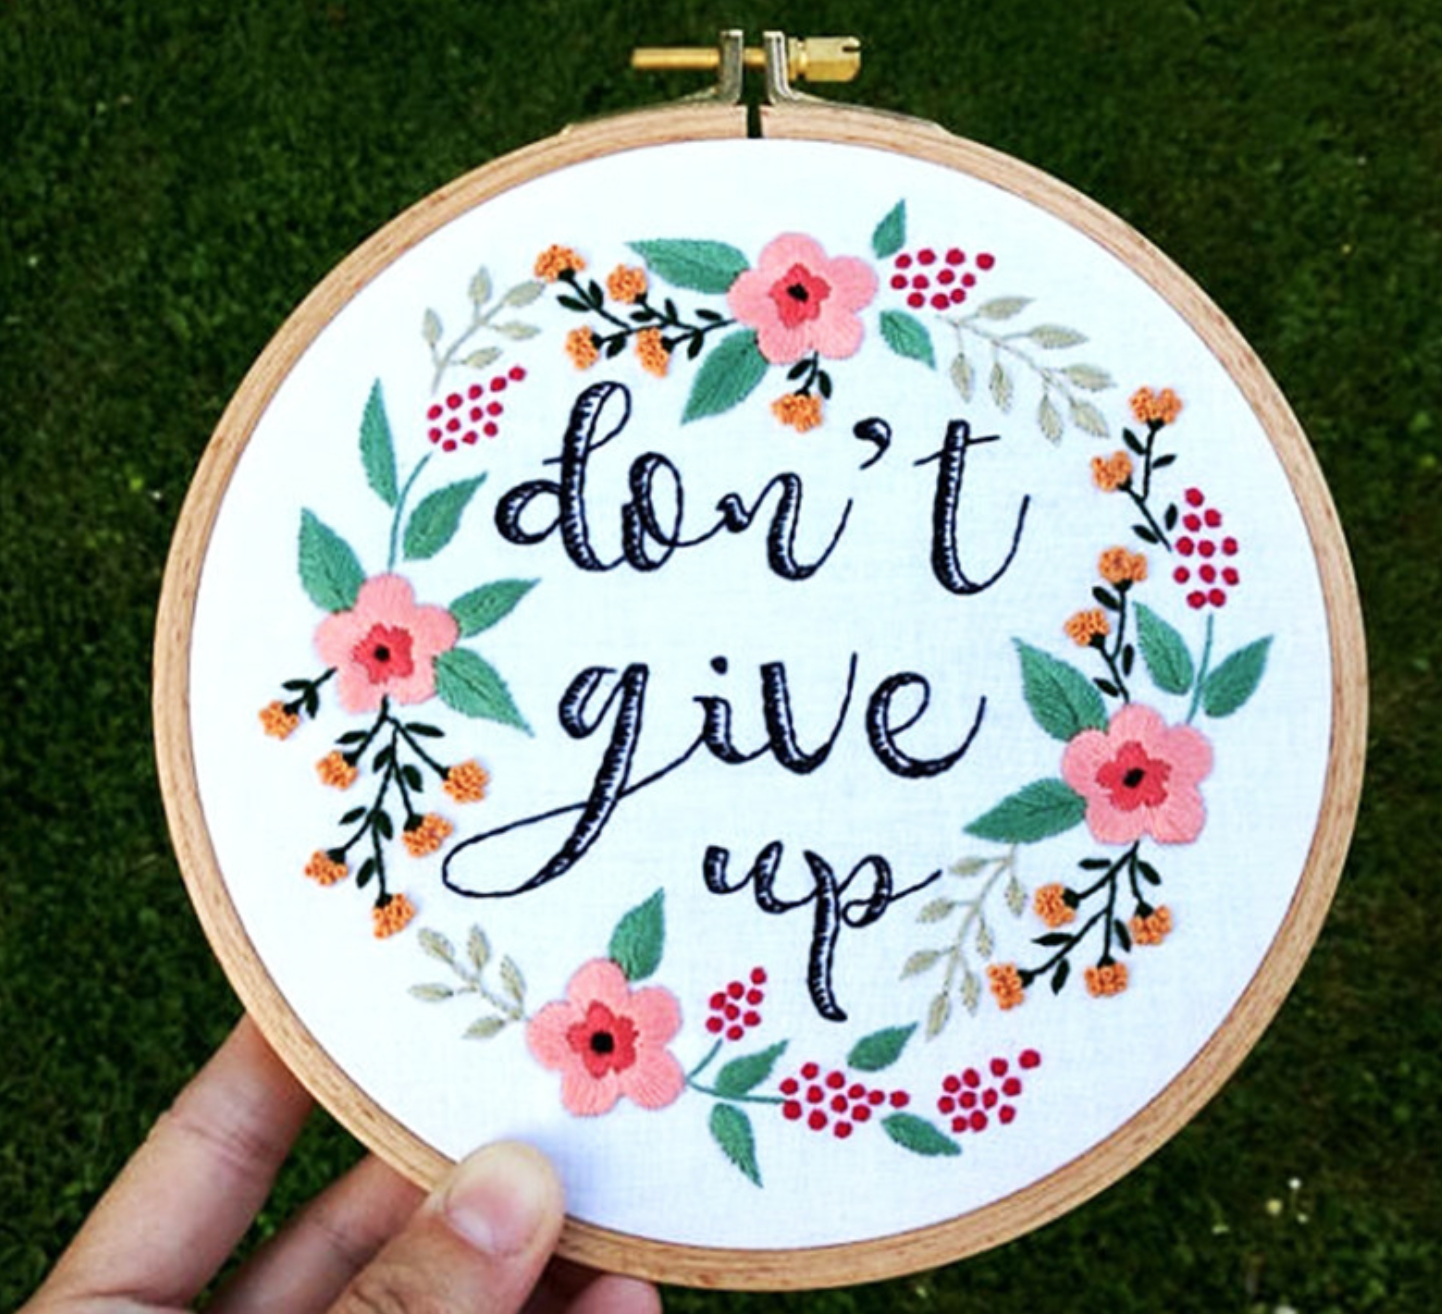 Don't give up Embroidery